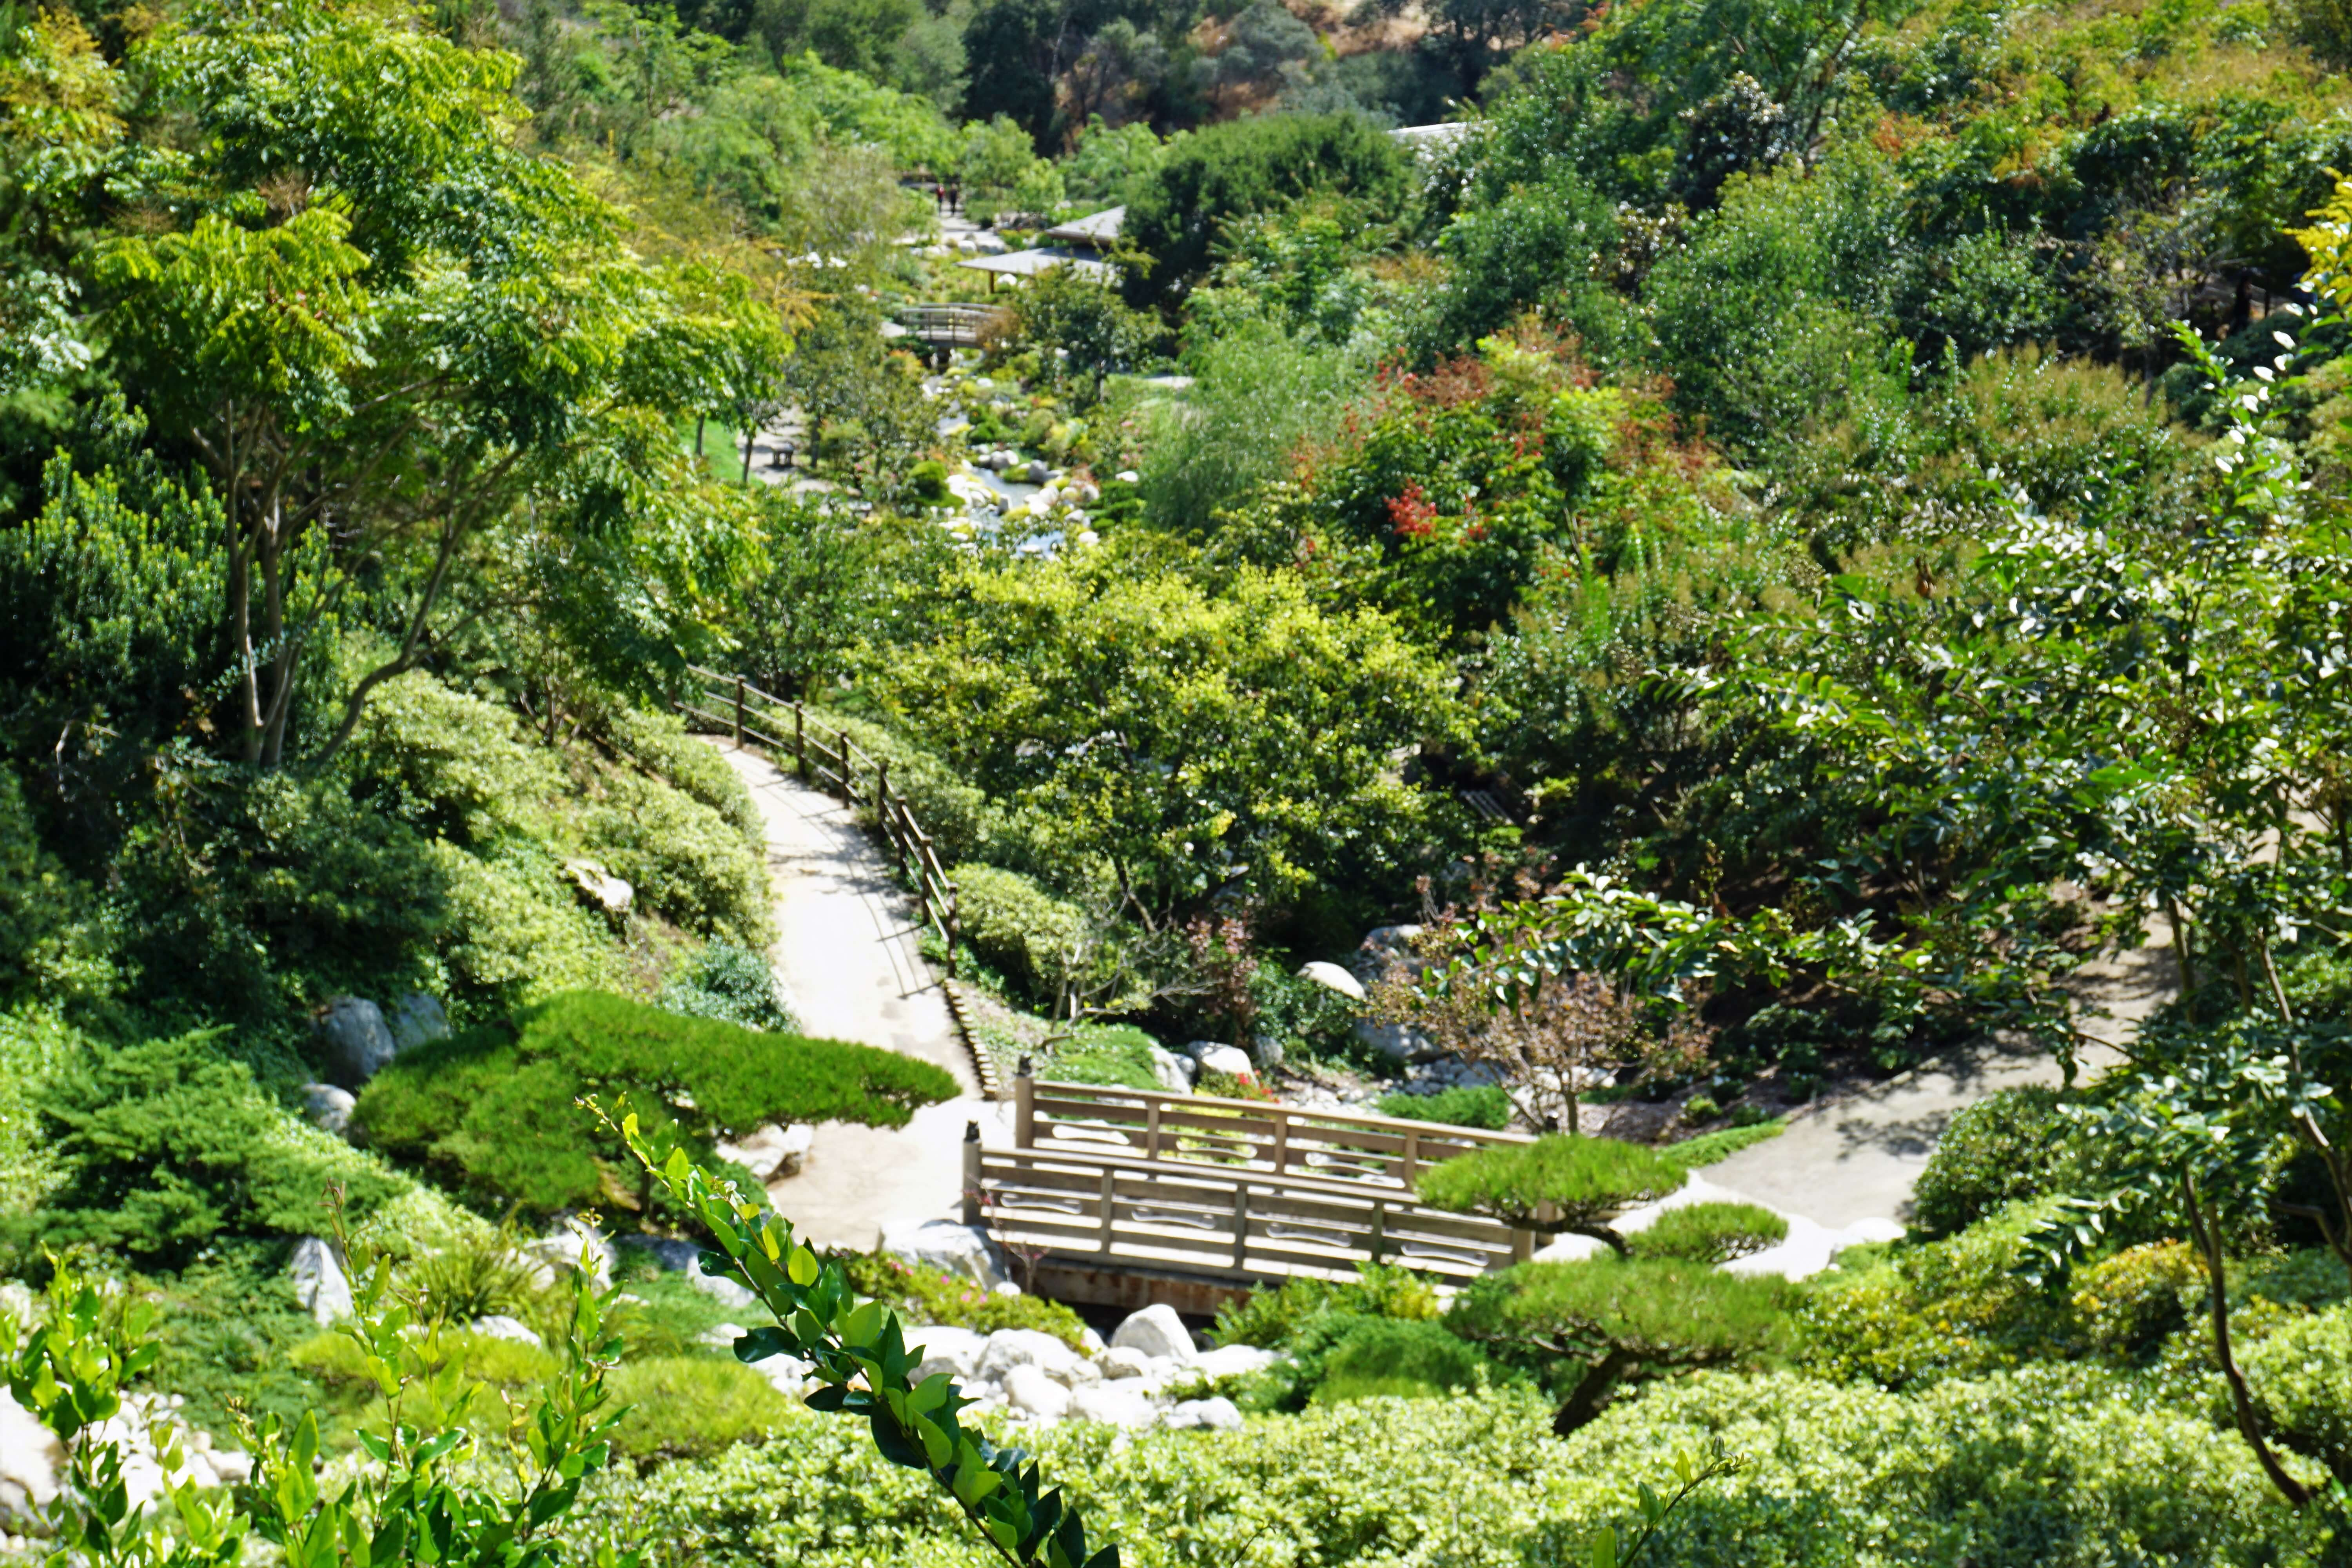 View of the Japanese Garden in Balboa Park, San Diego